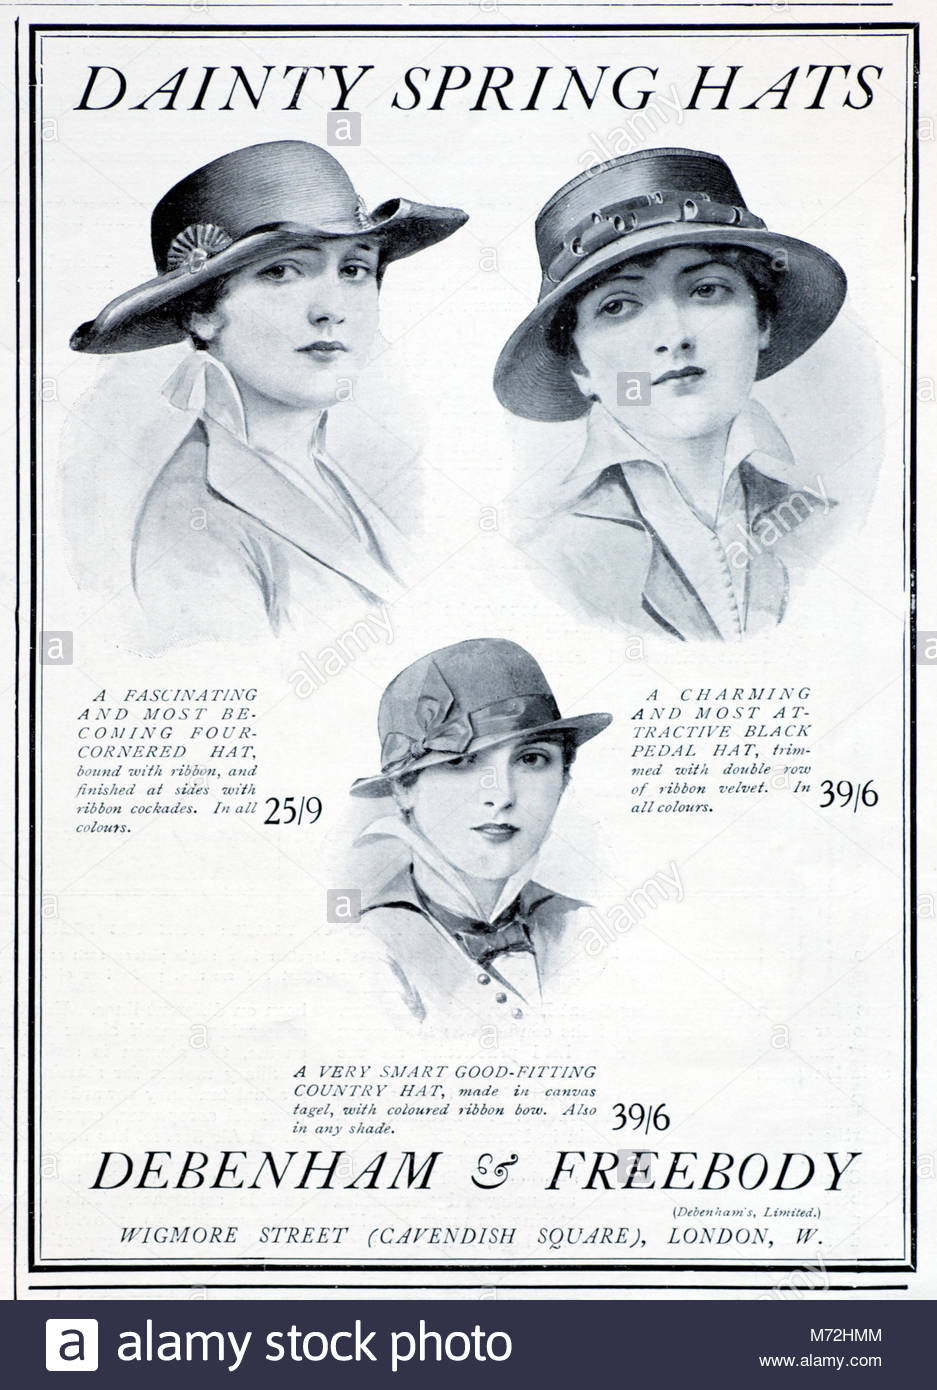 Debenham & Freebody Dainty Spring Hats vintage advertising from 1915 - Stock Image